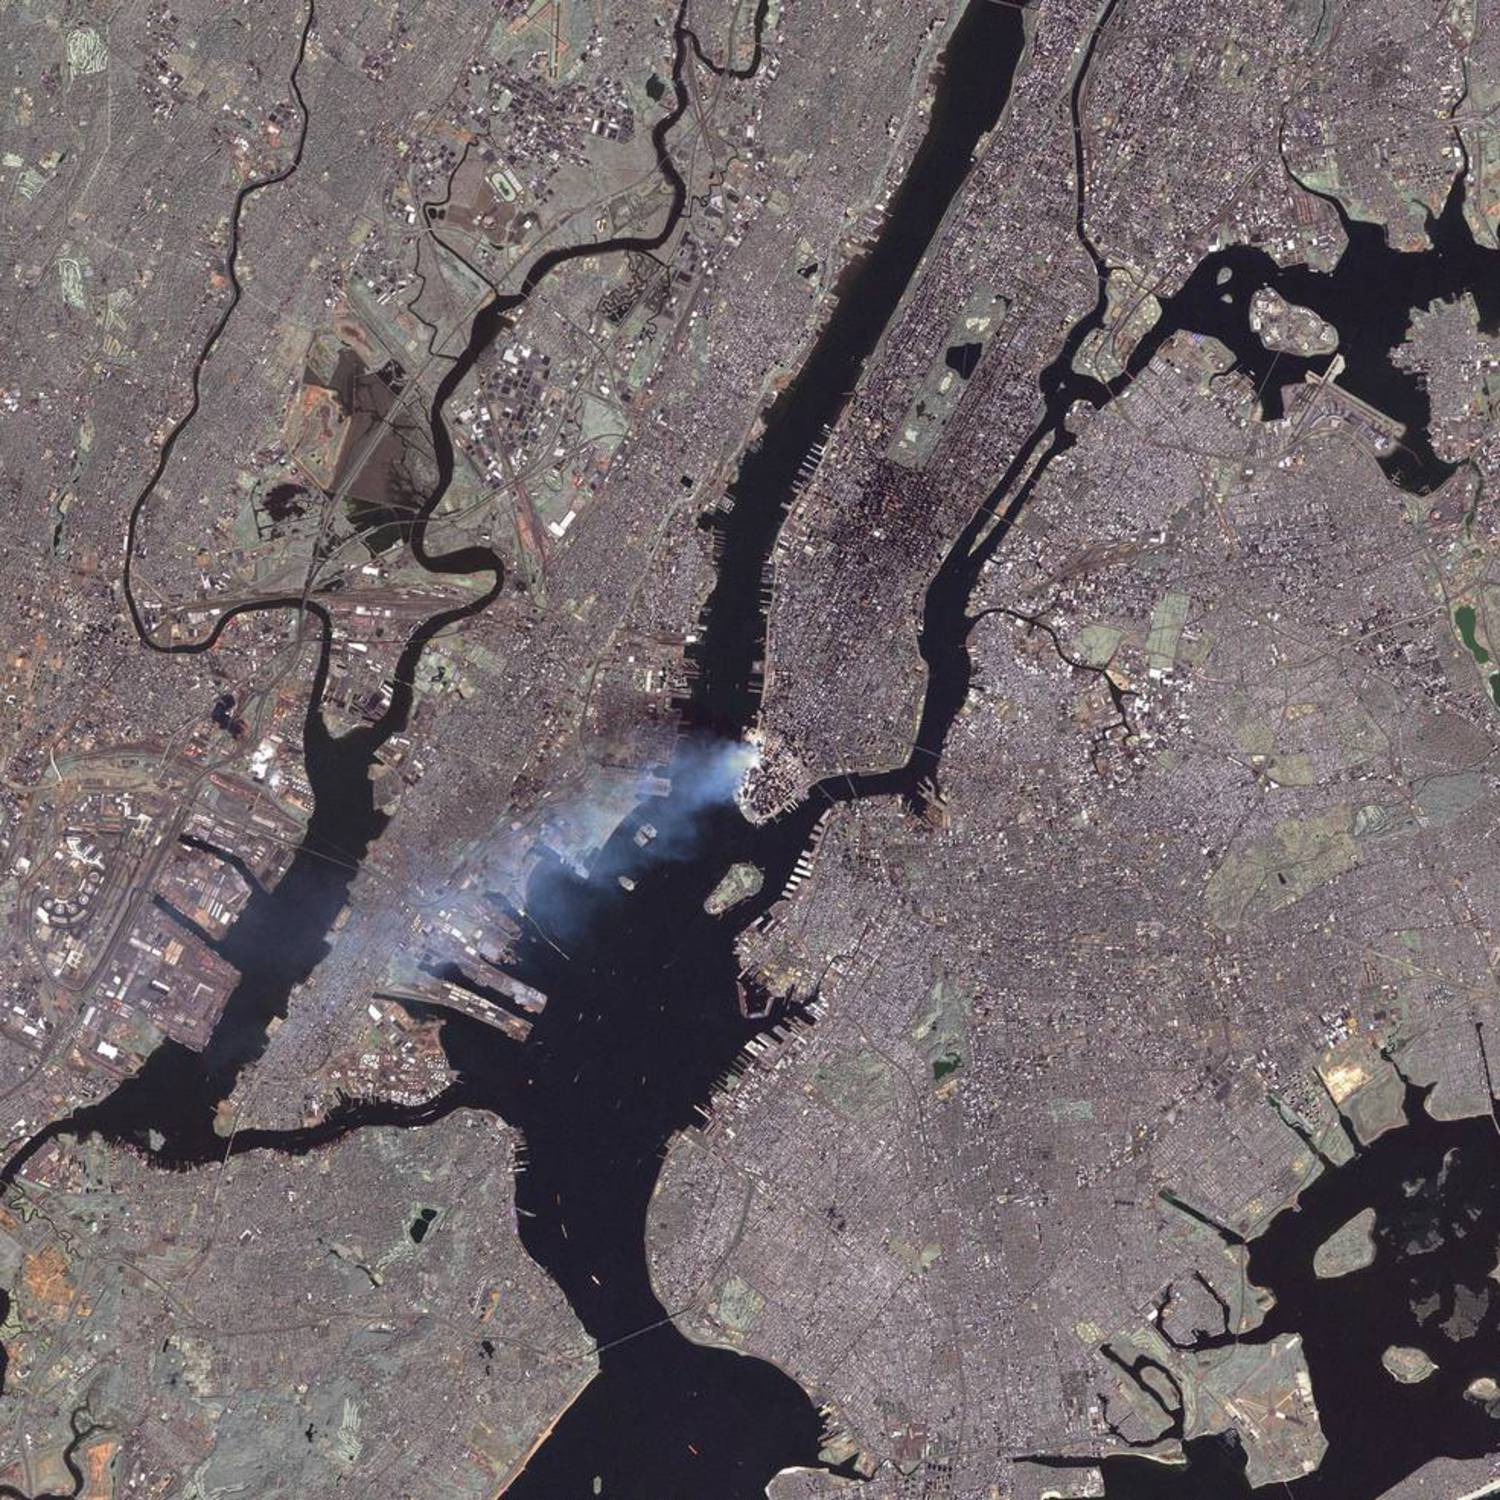 Smoke can still be seen at the site at around 11:30 a.m. on Sept. 12, in this image from the Landsat 7 satellite.